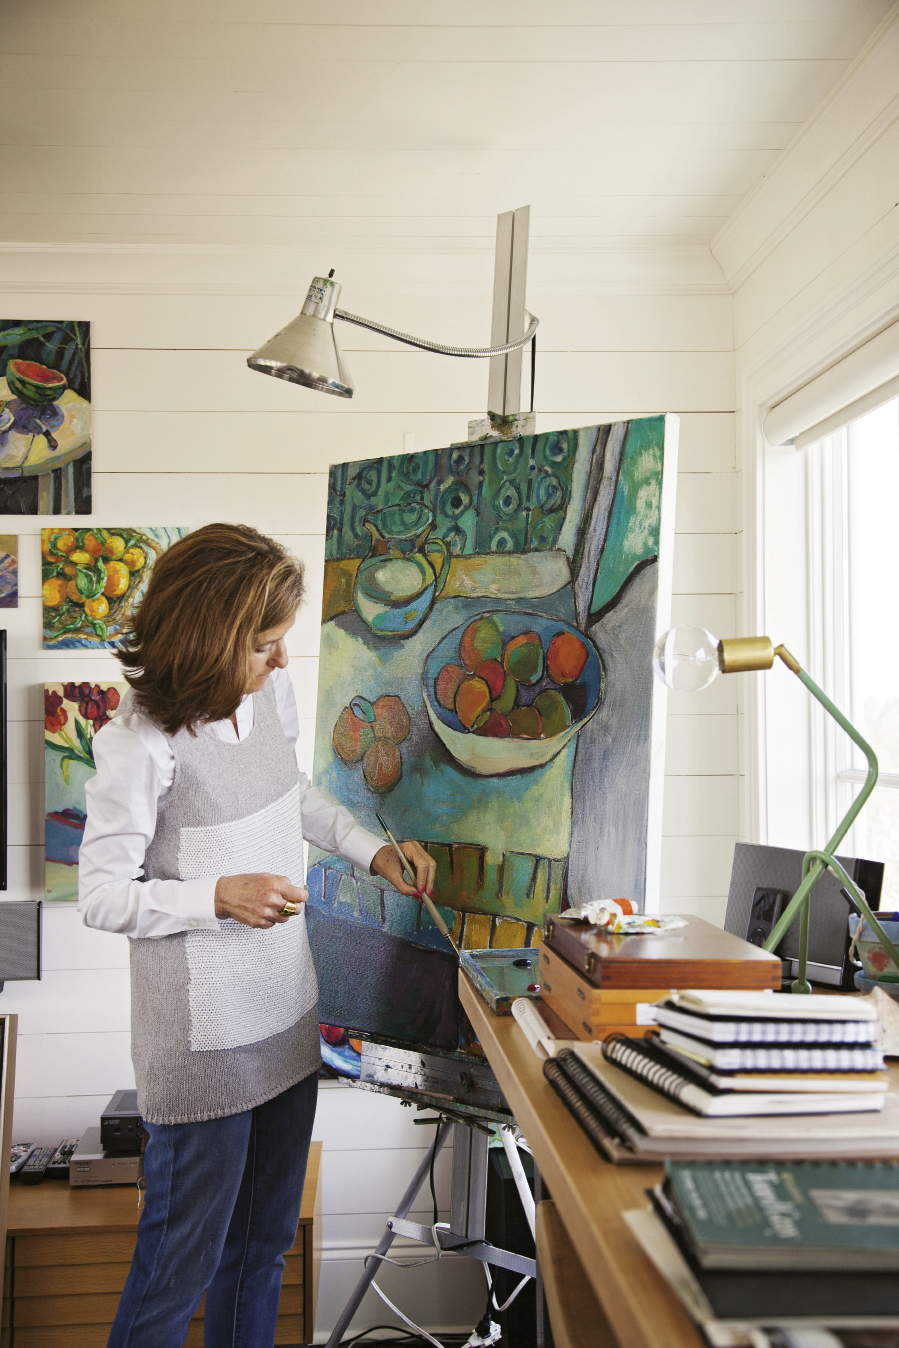 Each day, the artist spends time painting in her sunlit third-floor studio.